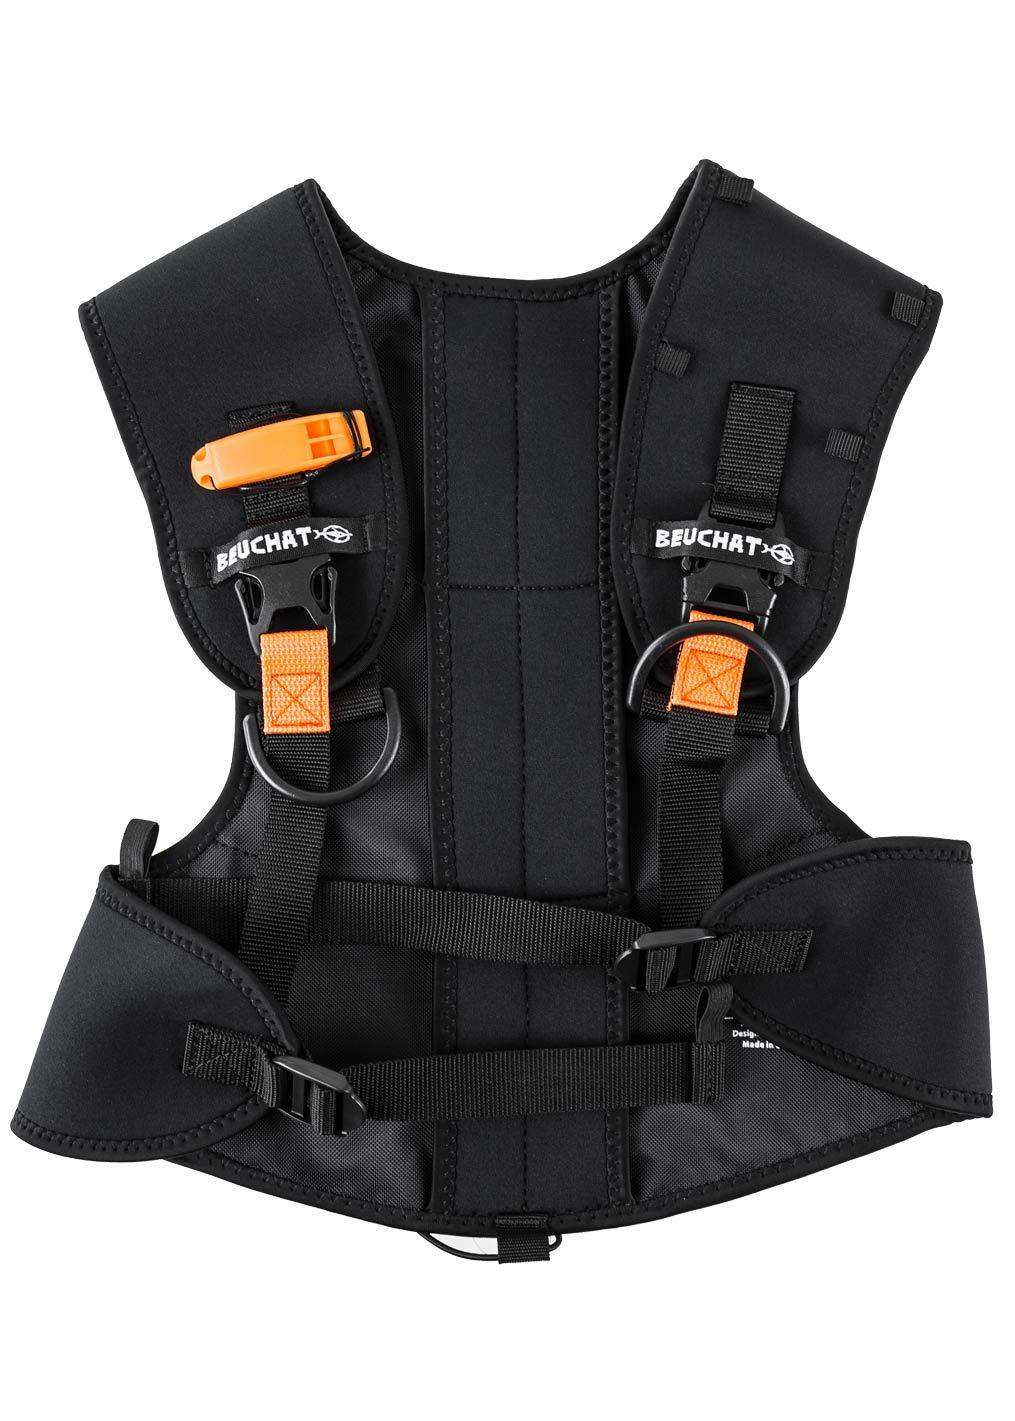 Beuchat Weight Harness with quick release system - adjustable up to 8 kg - universal size